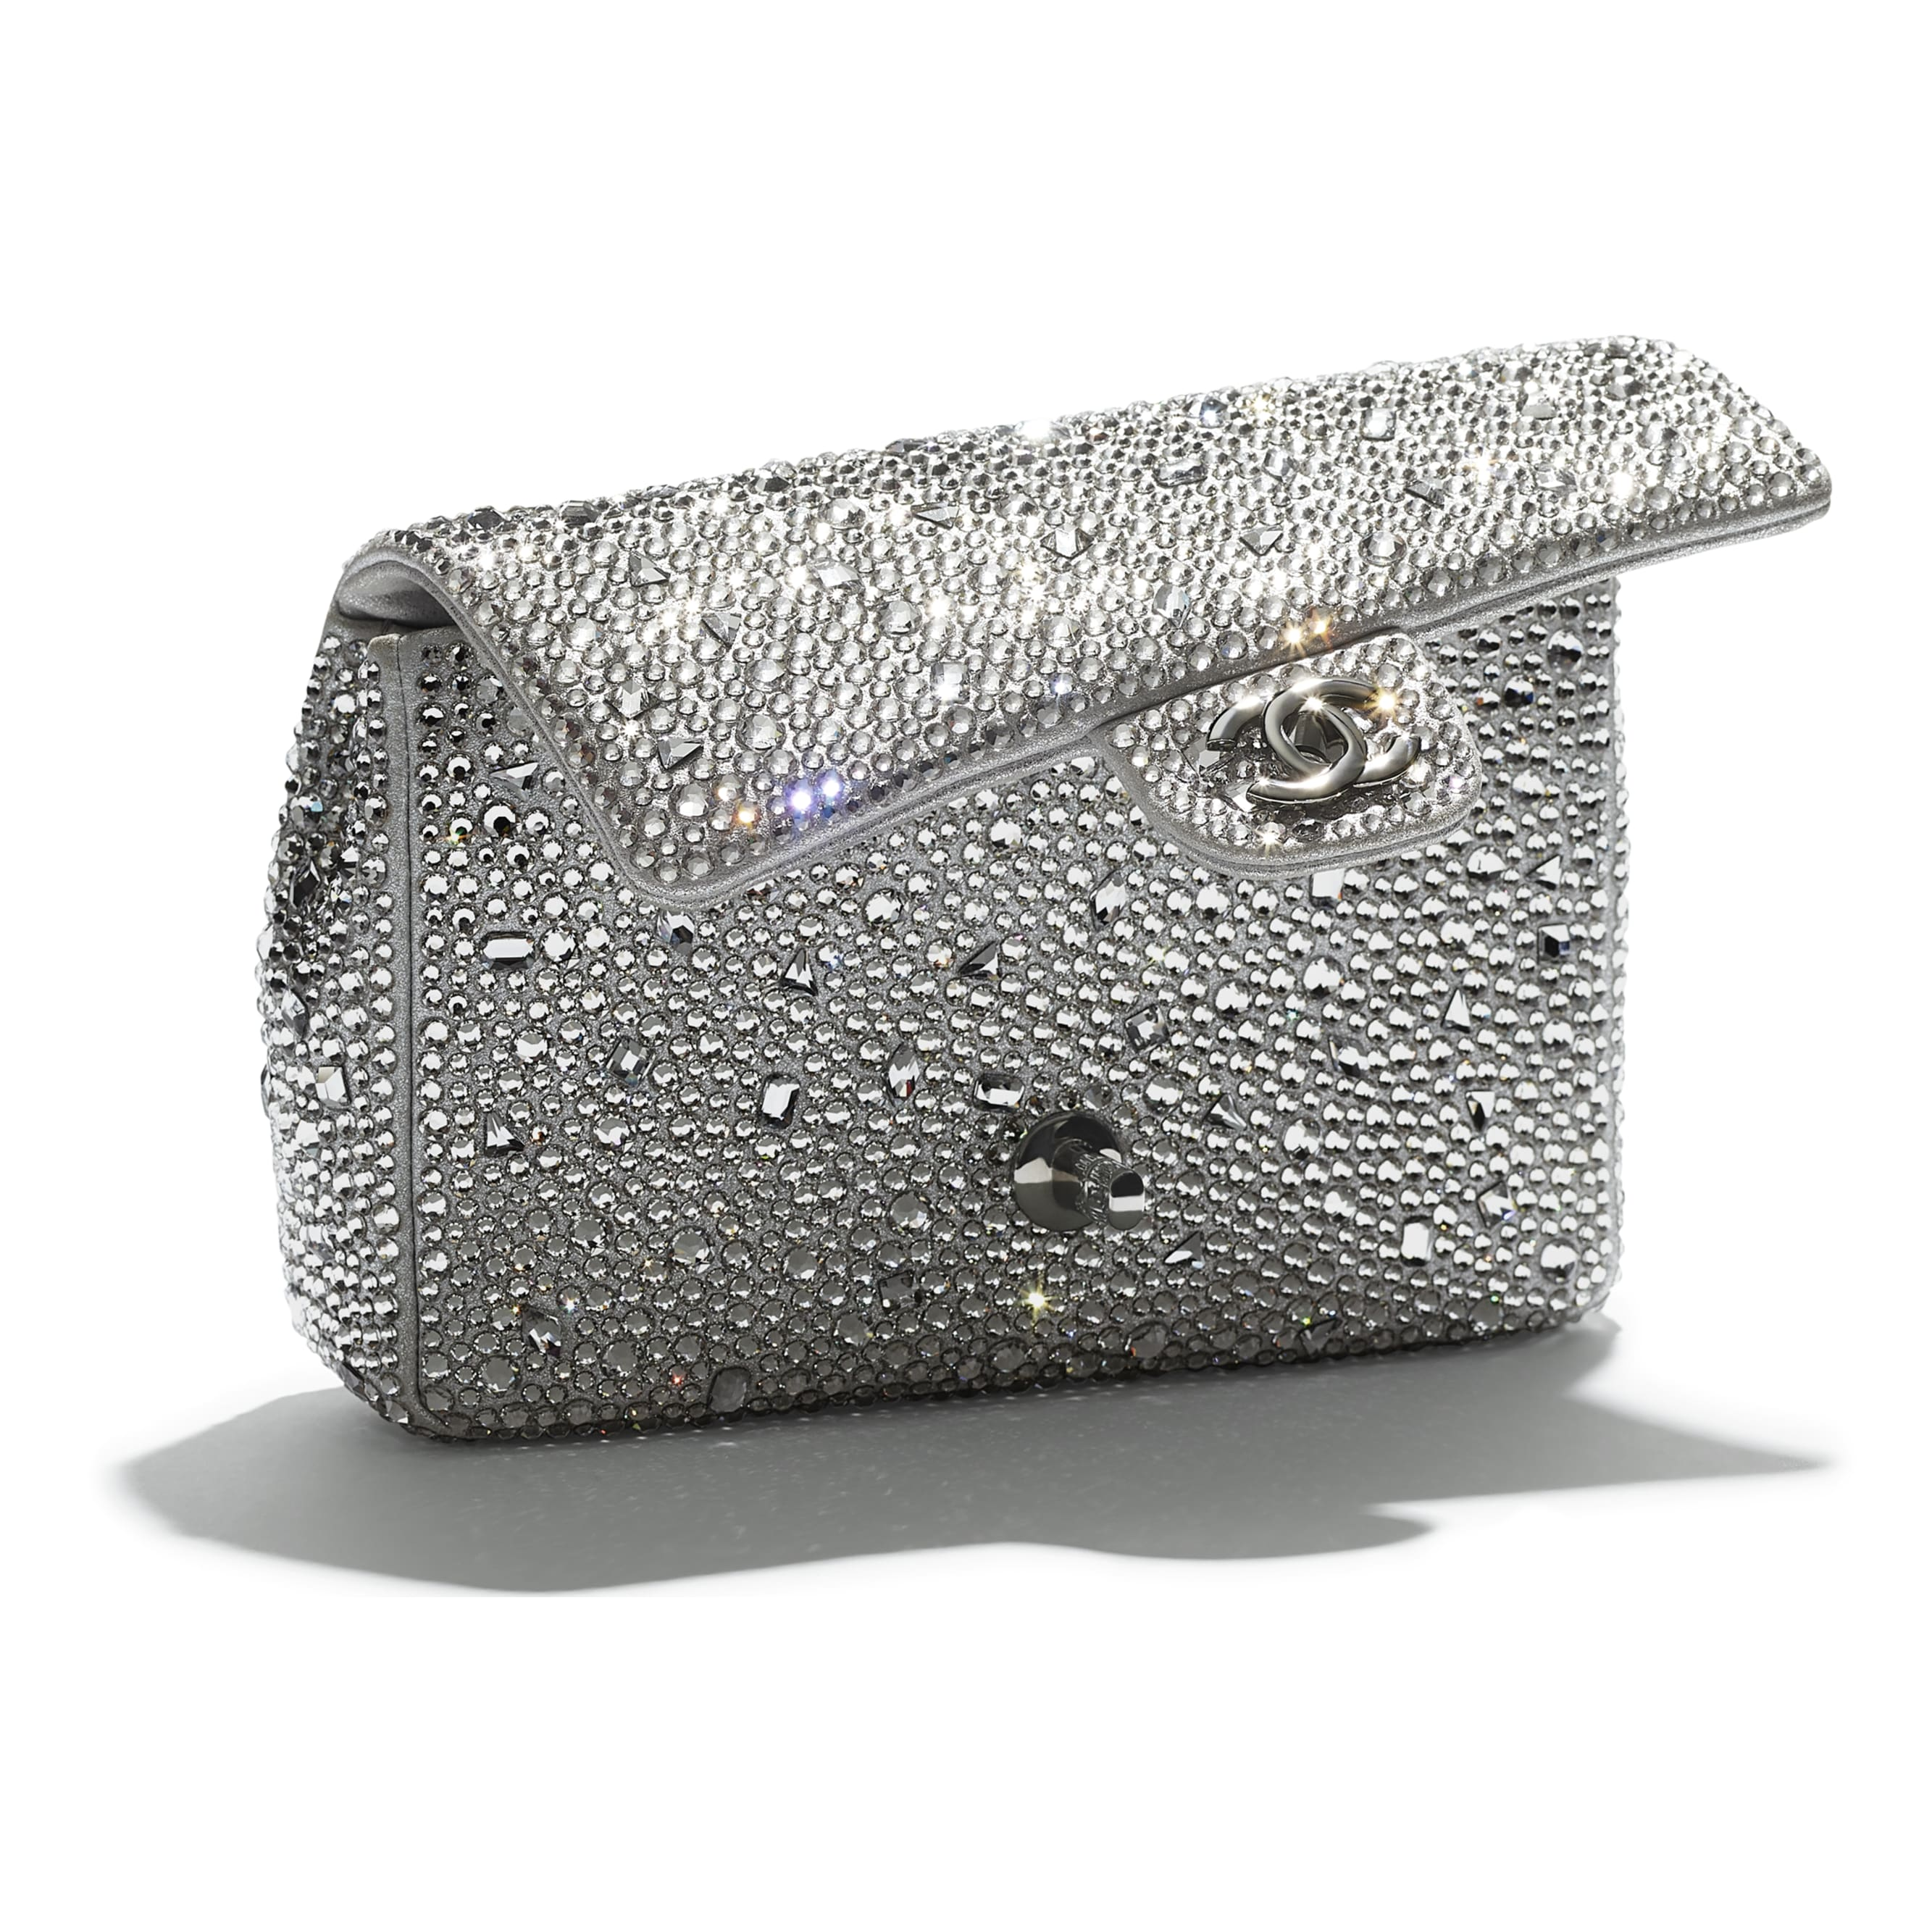 Flap Bag - Silver - Strass, Lambskin & Ruthenium-Finish Metal - CHANEL - Extra view - see standard sized version